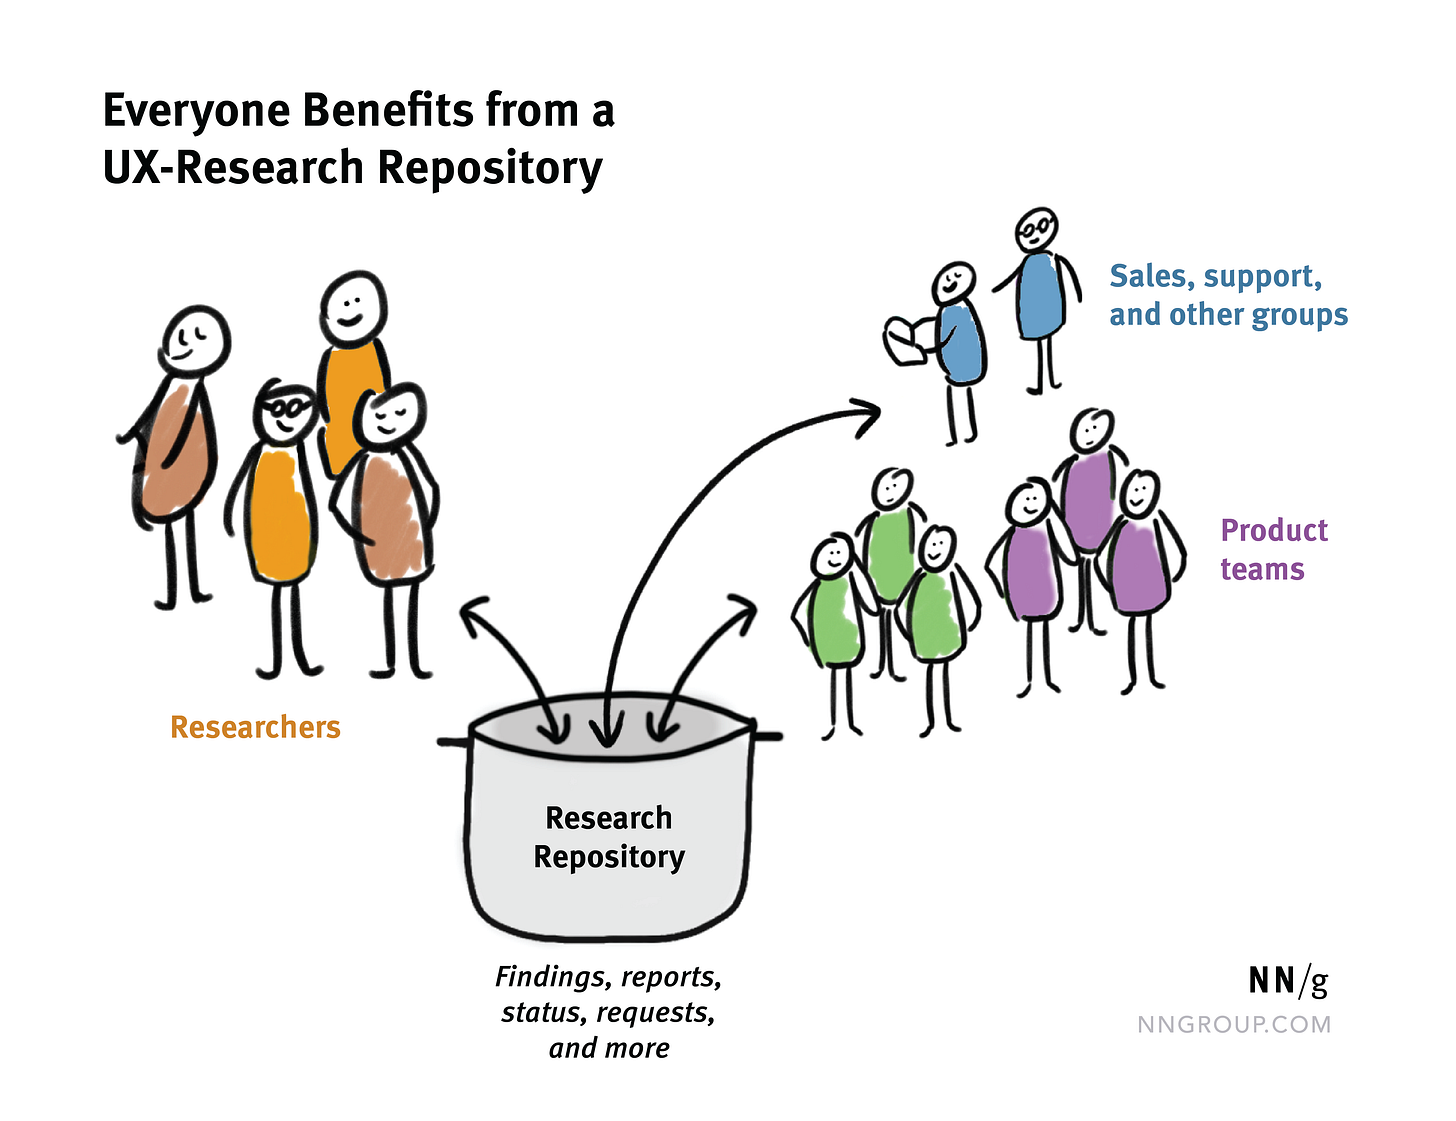 """Stick figures of people """"researchers, support, sales, and product teams"""" with arrows point in and out of a """"research repository"""" pot"""